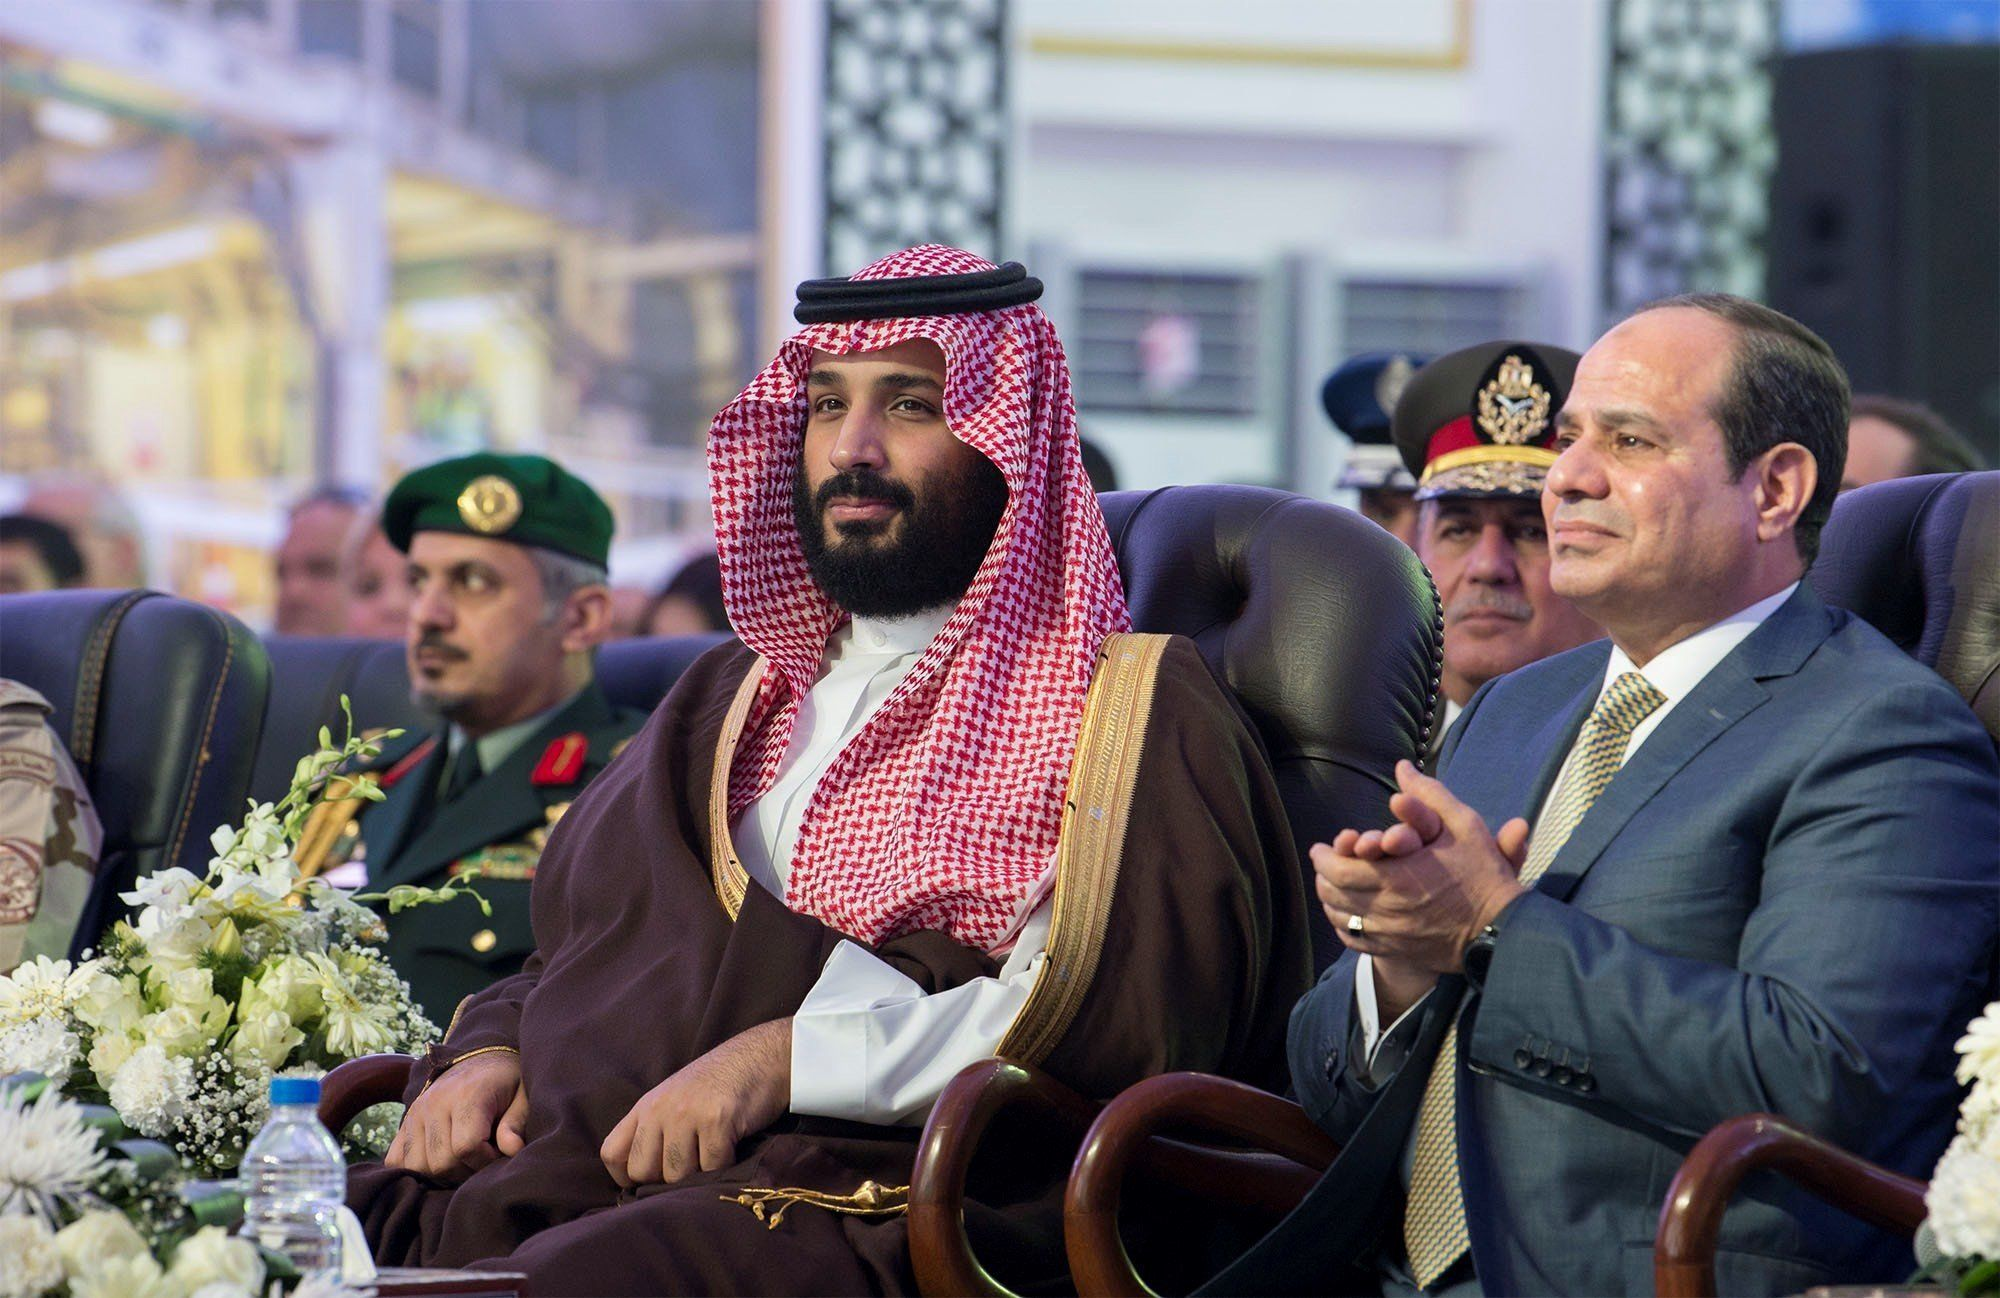 Saudi Crown Prince arrives in search of investors and nuclear deal